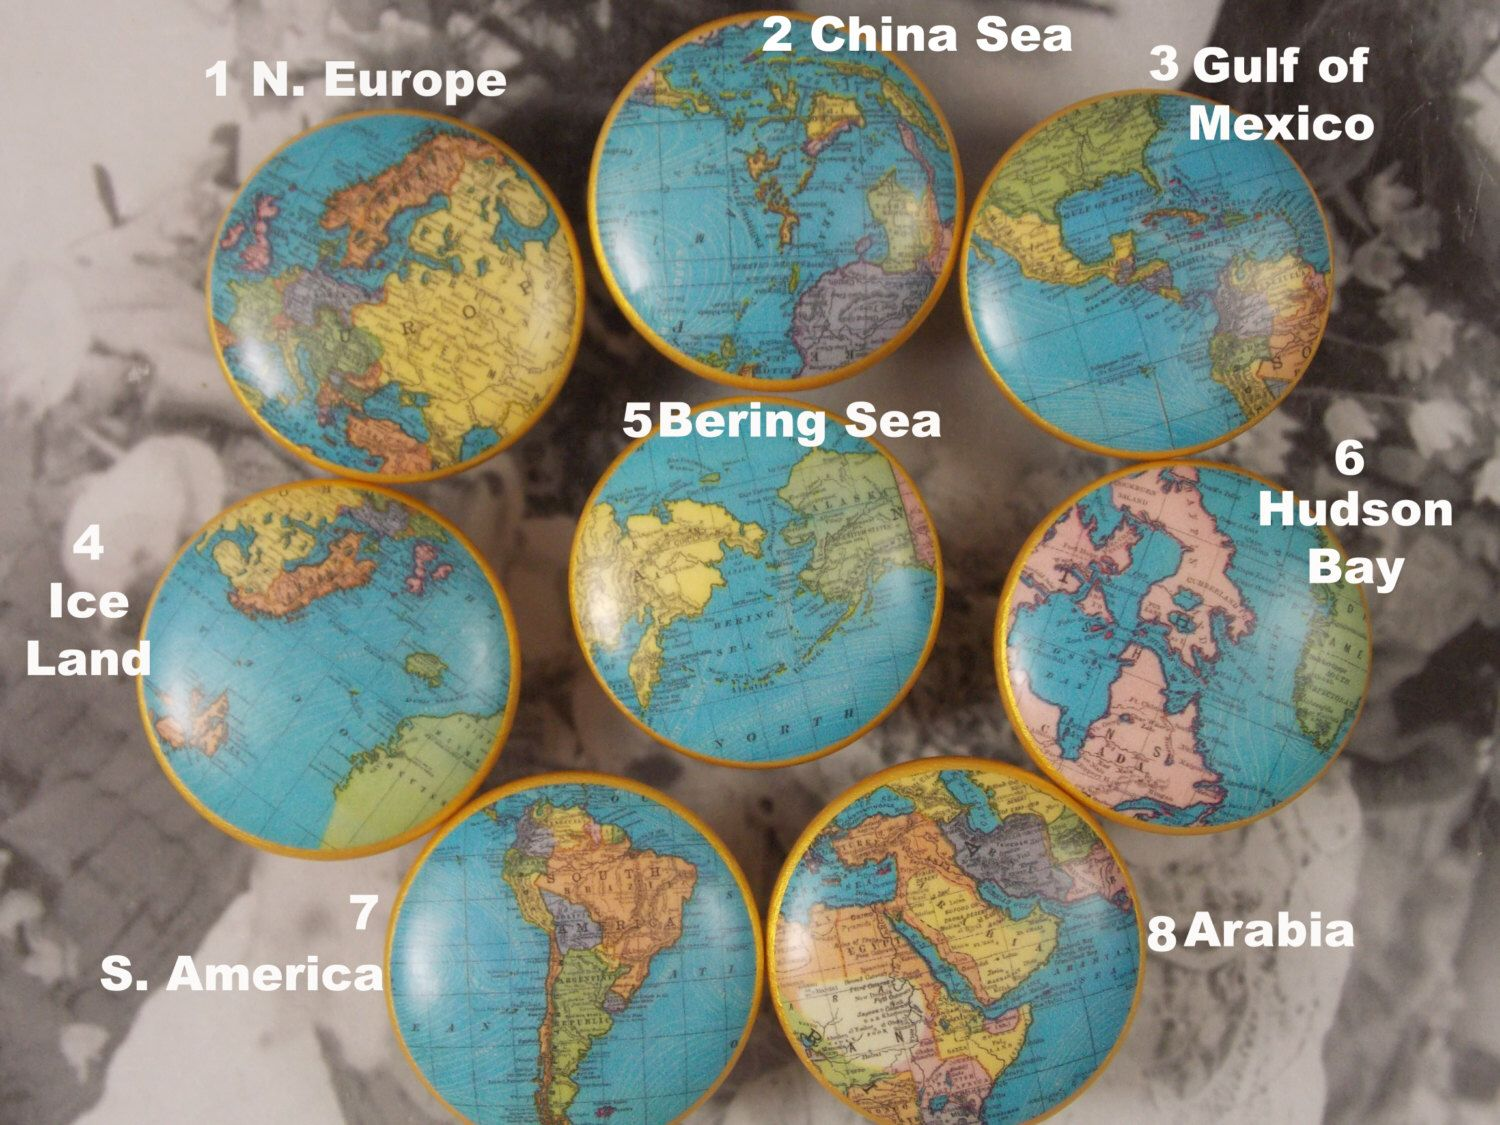 1 12 map dresser knobs 12 blue world maps with great detail to 1 12 map dresser knobs 12 blue world maps with great detail to choose from priced for one knob by dynastyprints on etsy gumiabroncs Images